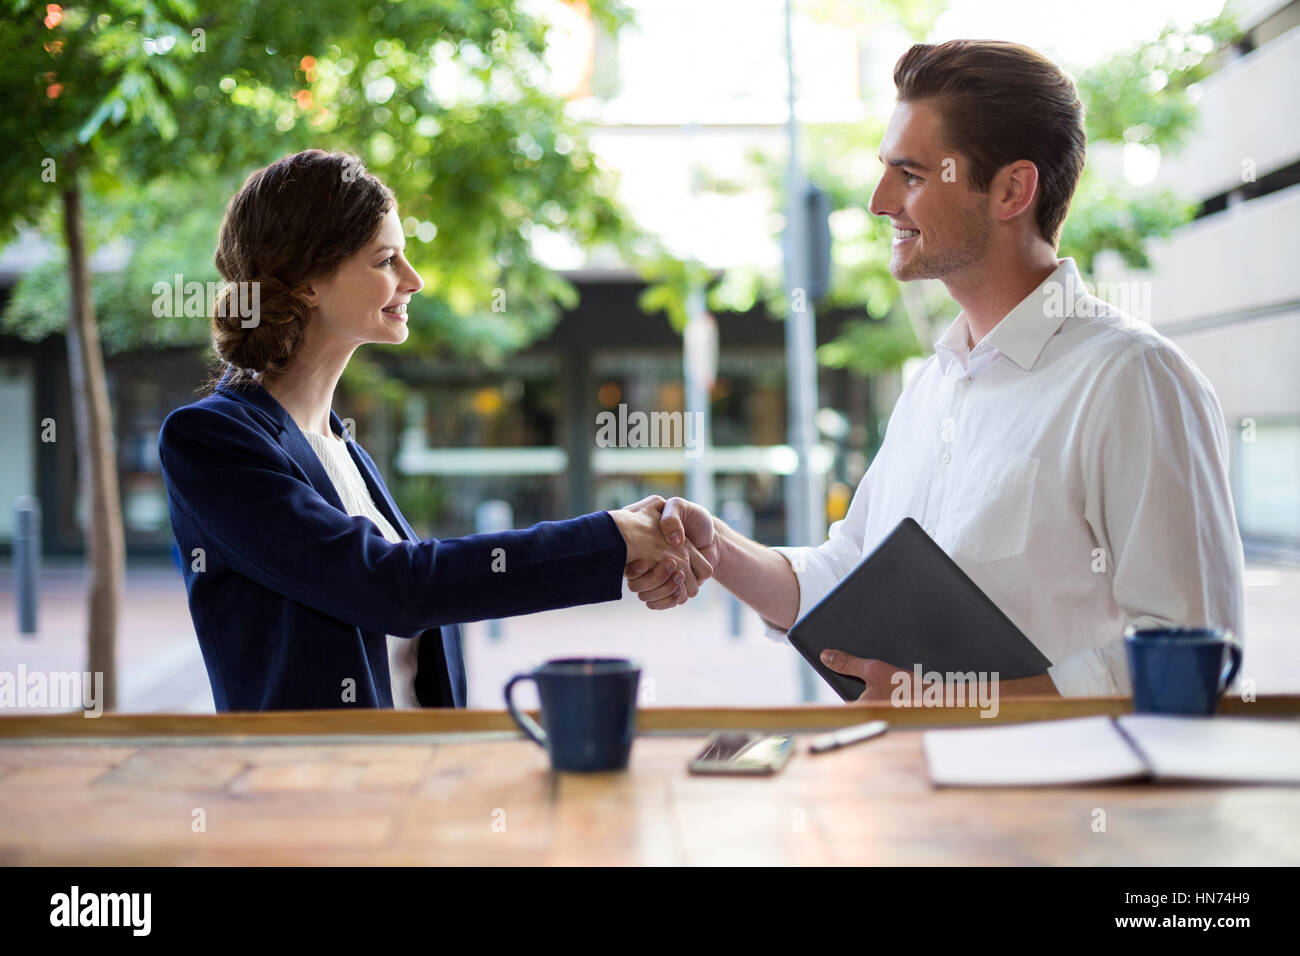 Businesswoman shaking hands with businessman at counter in cafe - Stock Image